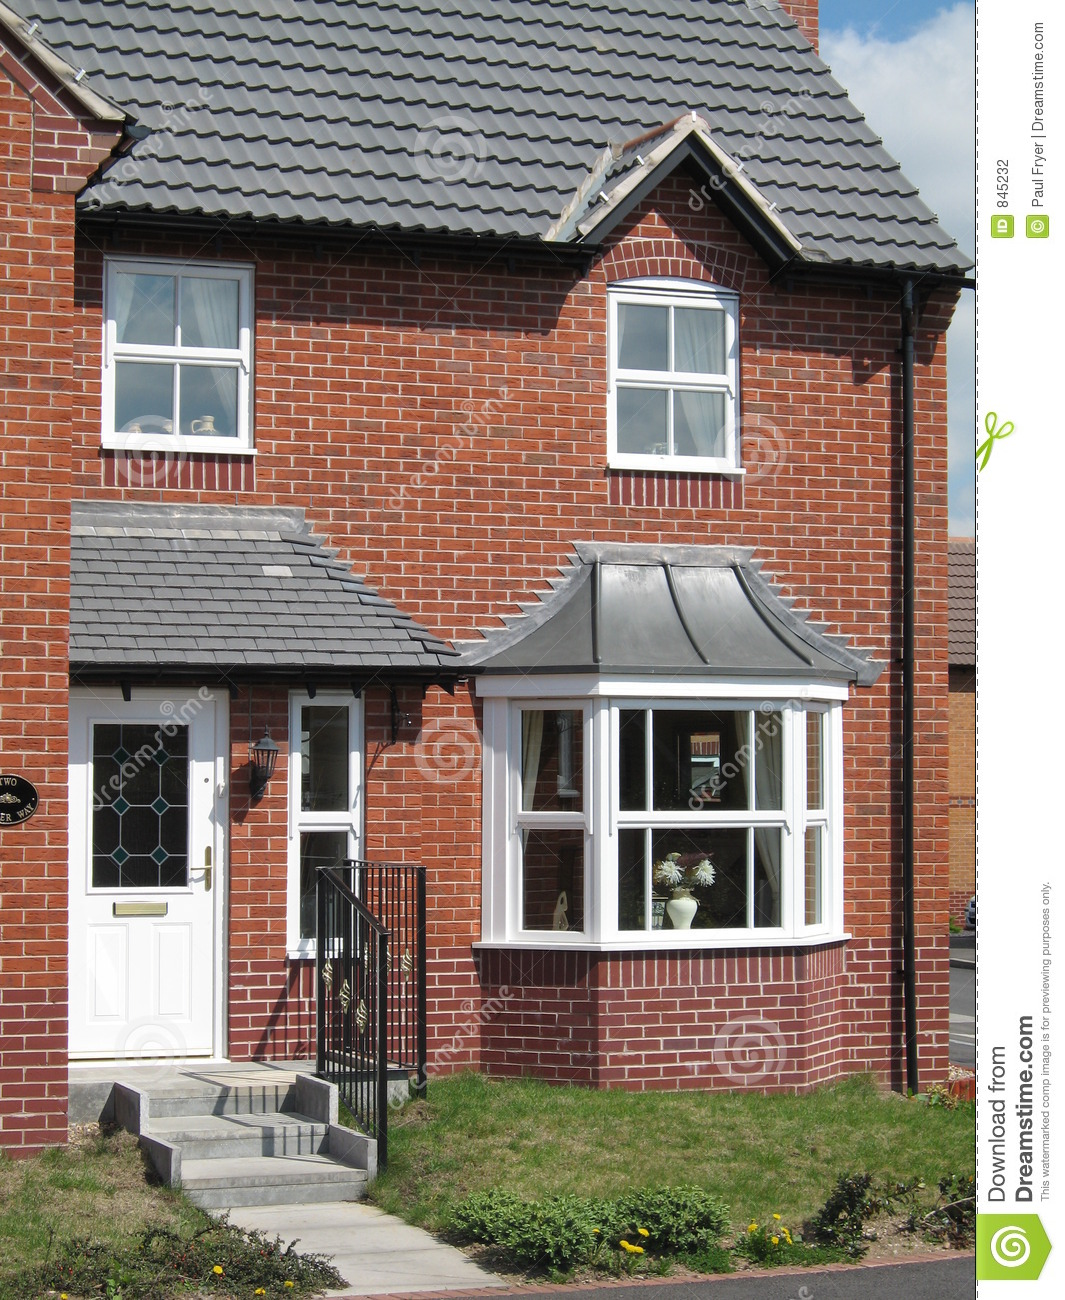 New Brick Homes: House Uk Red Brick New Build Home Stock Photo